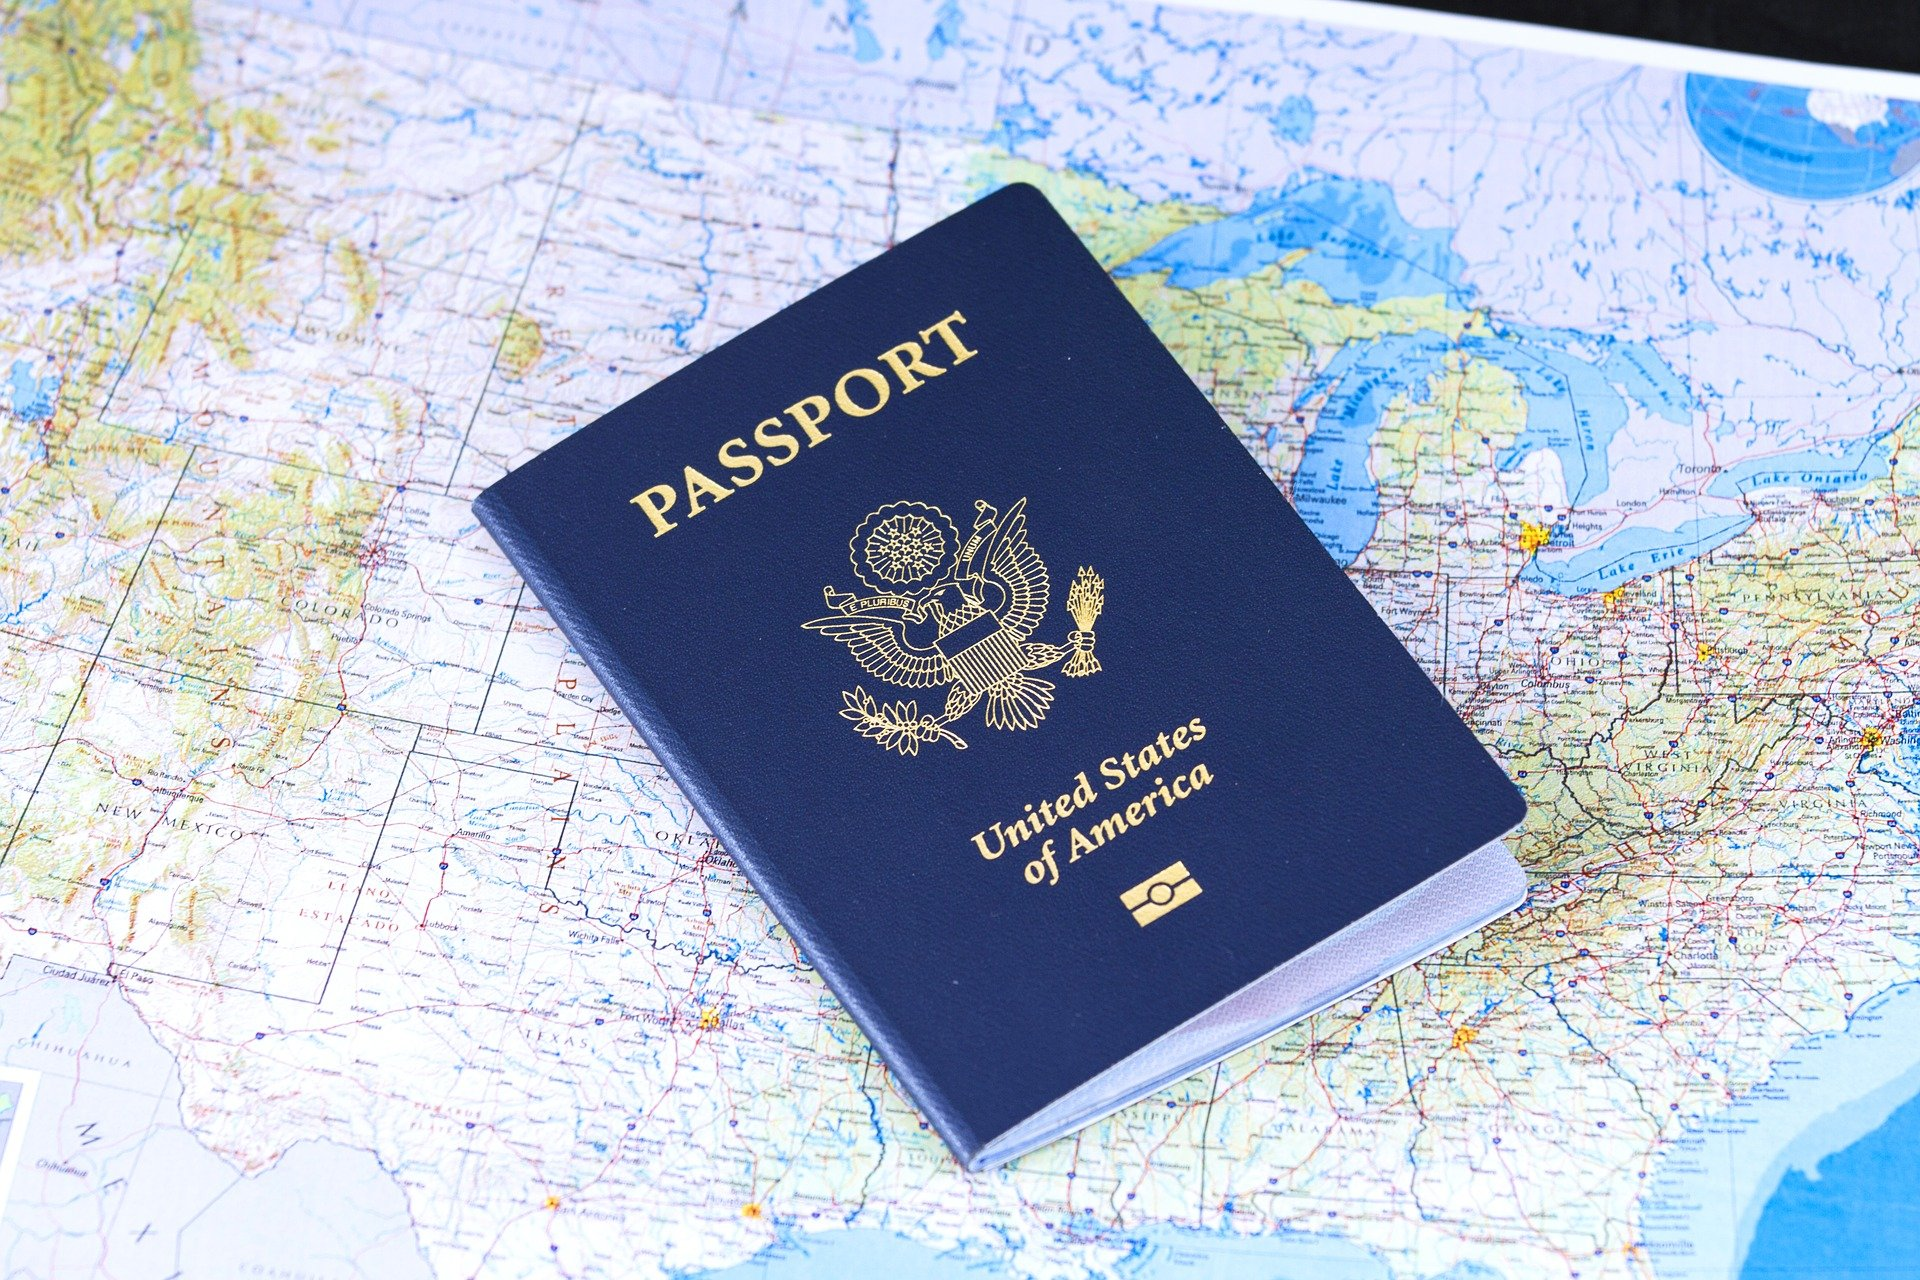 Passport lying on the map.